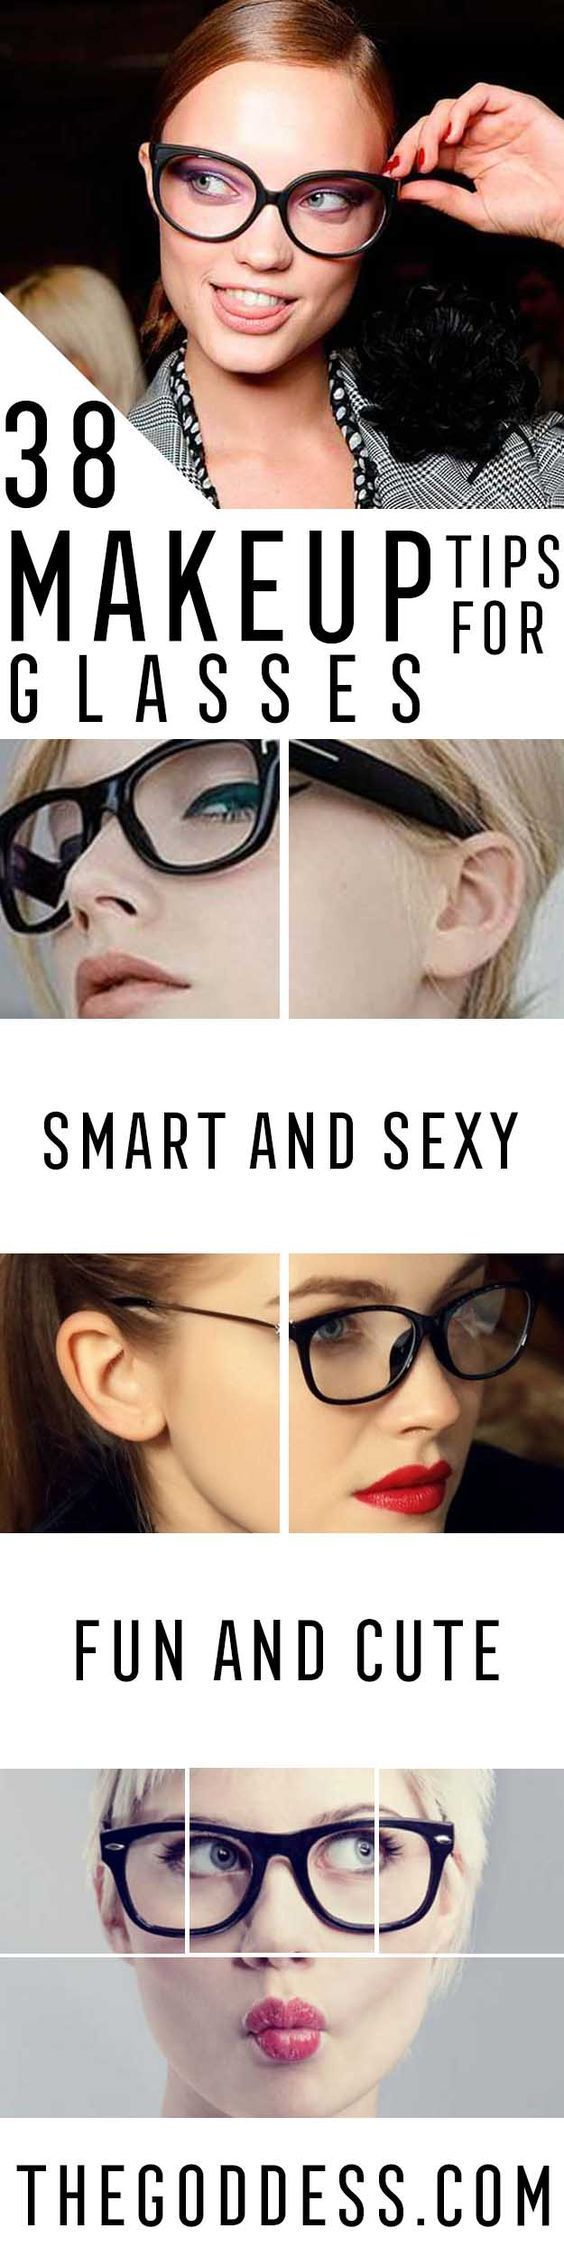 Makeup Tips For Glasses - Simple Step by Step Tutorials for People with Eye Glasses - Easy Beauty Tips for Different Face Shapes, Make Up Ideas and Awesome Hairstyles for Different Types of Eyeglasses - Eyeliner, Foundation, and Nail Art Ideas that Go Gre